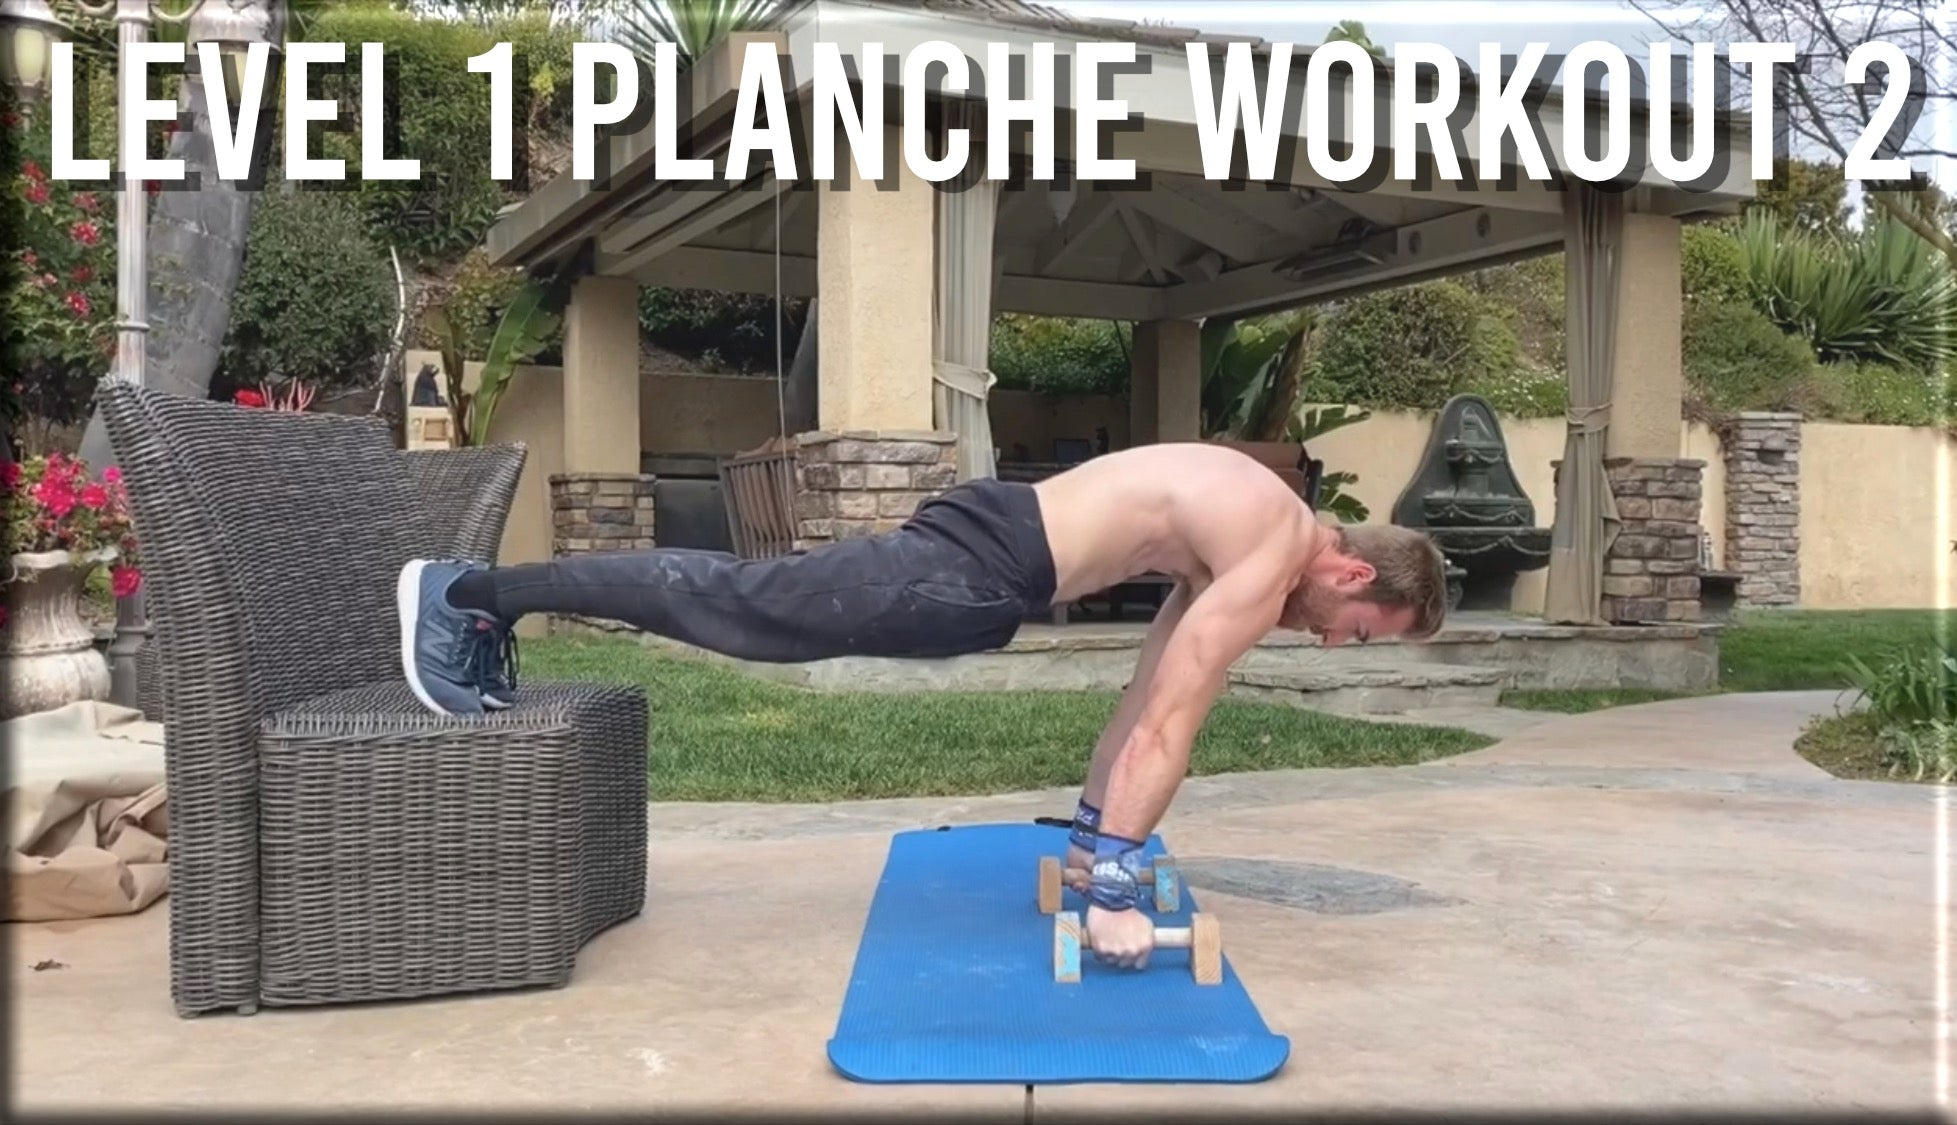 Level 1 Planche Workout 2